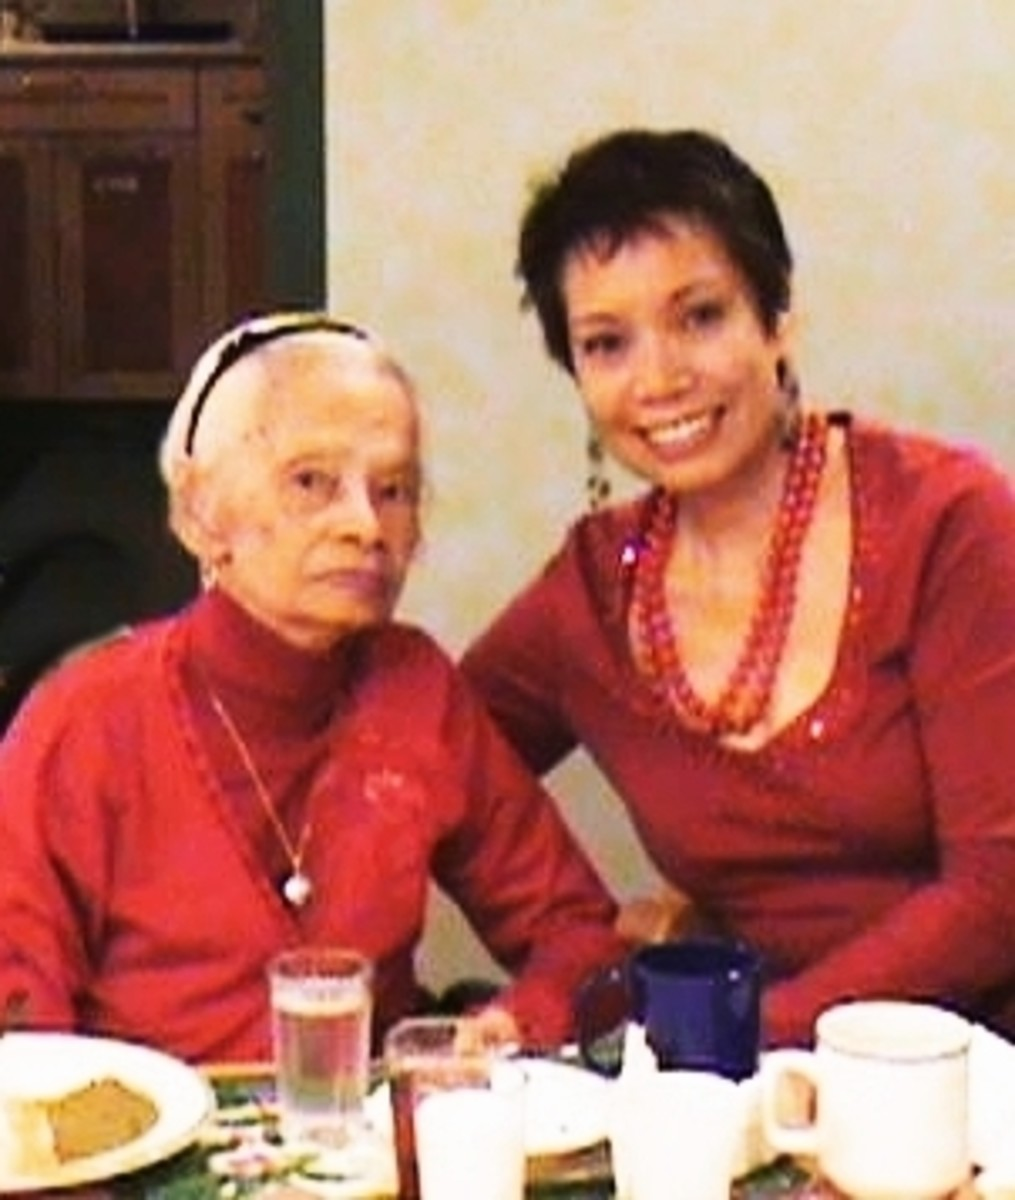 My mother and me (last Christmas with my mother, 2007)